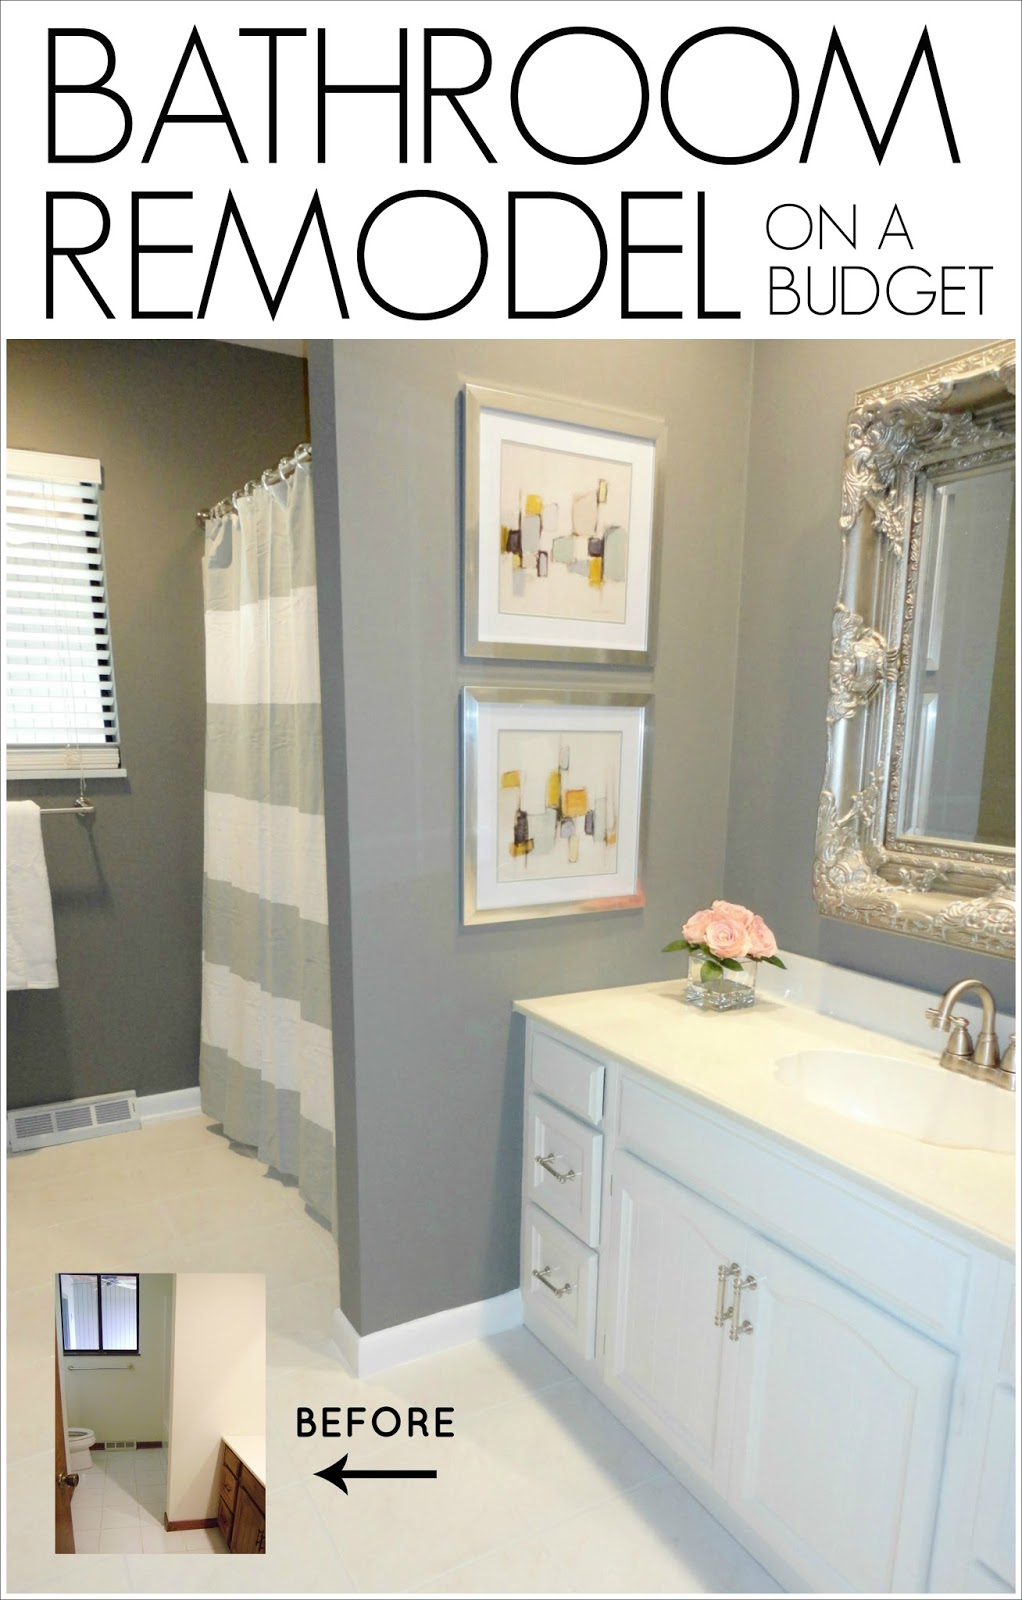 Livelovediy diy bathroom remodel on a budget for Remodeling bathroom ideas on a budget